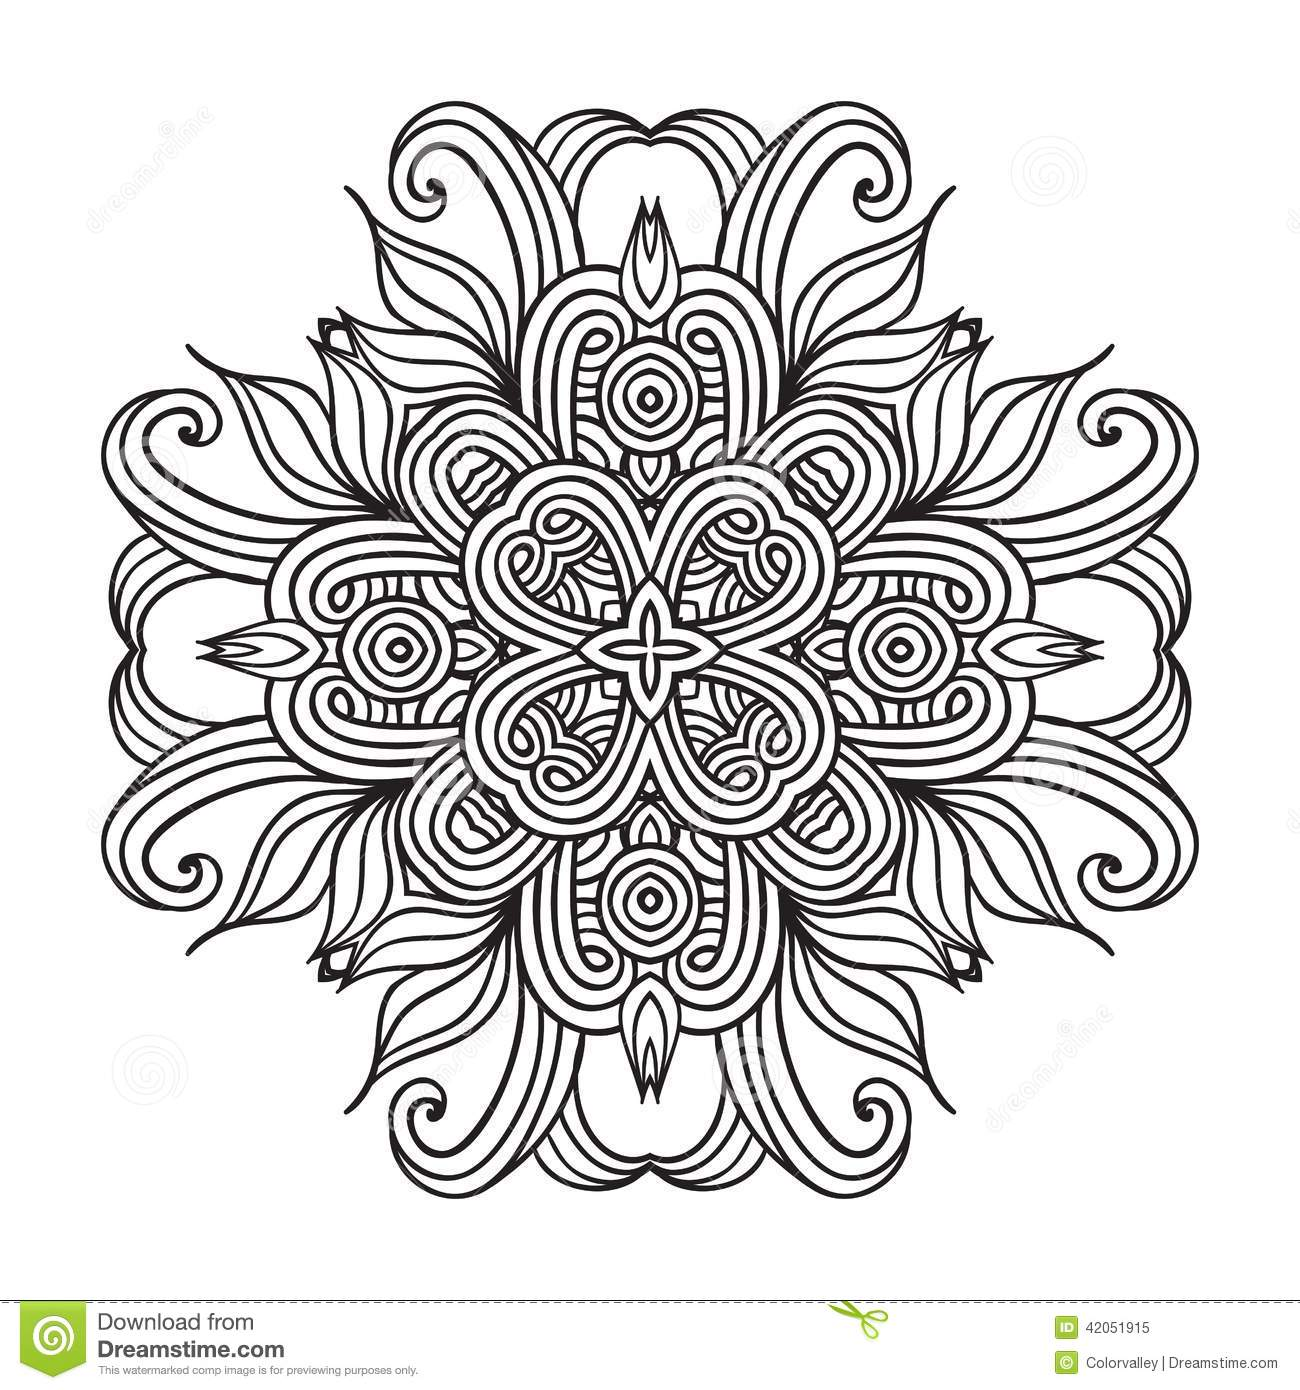 floral pattern coloring pages - contemporary doily round lace floral pattern stock vector